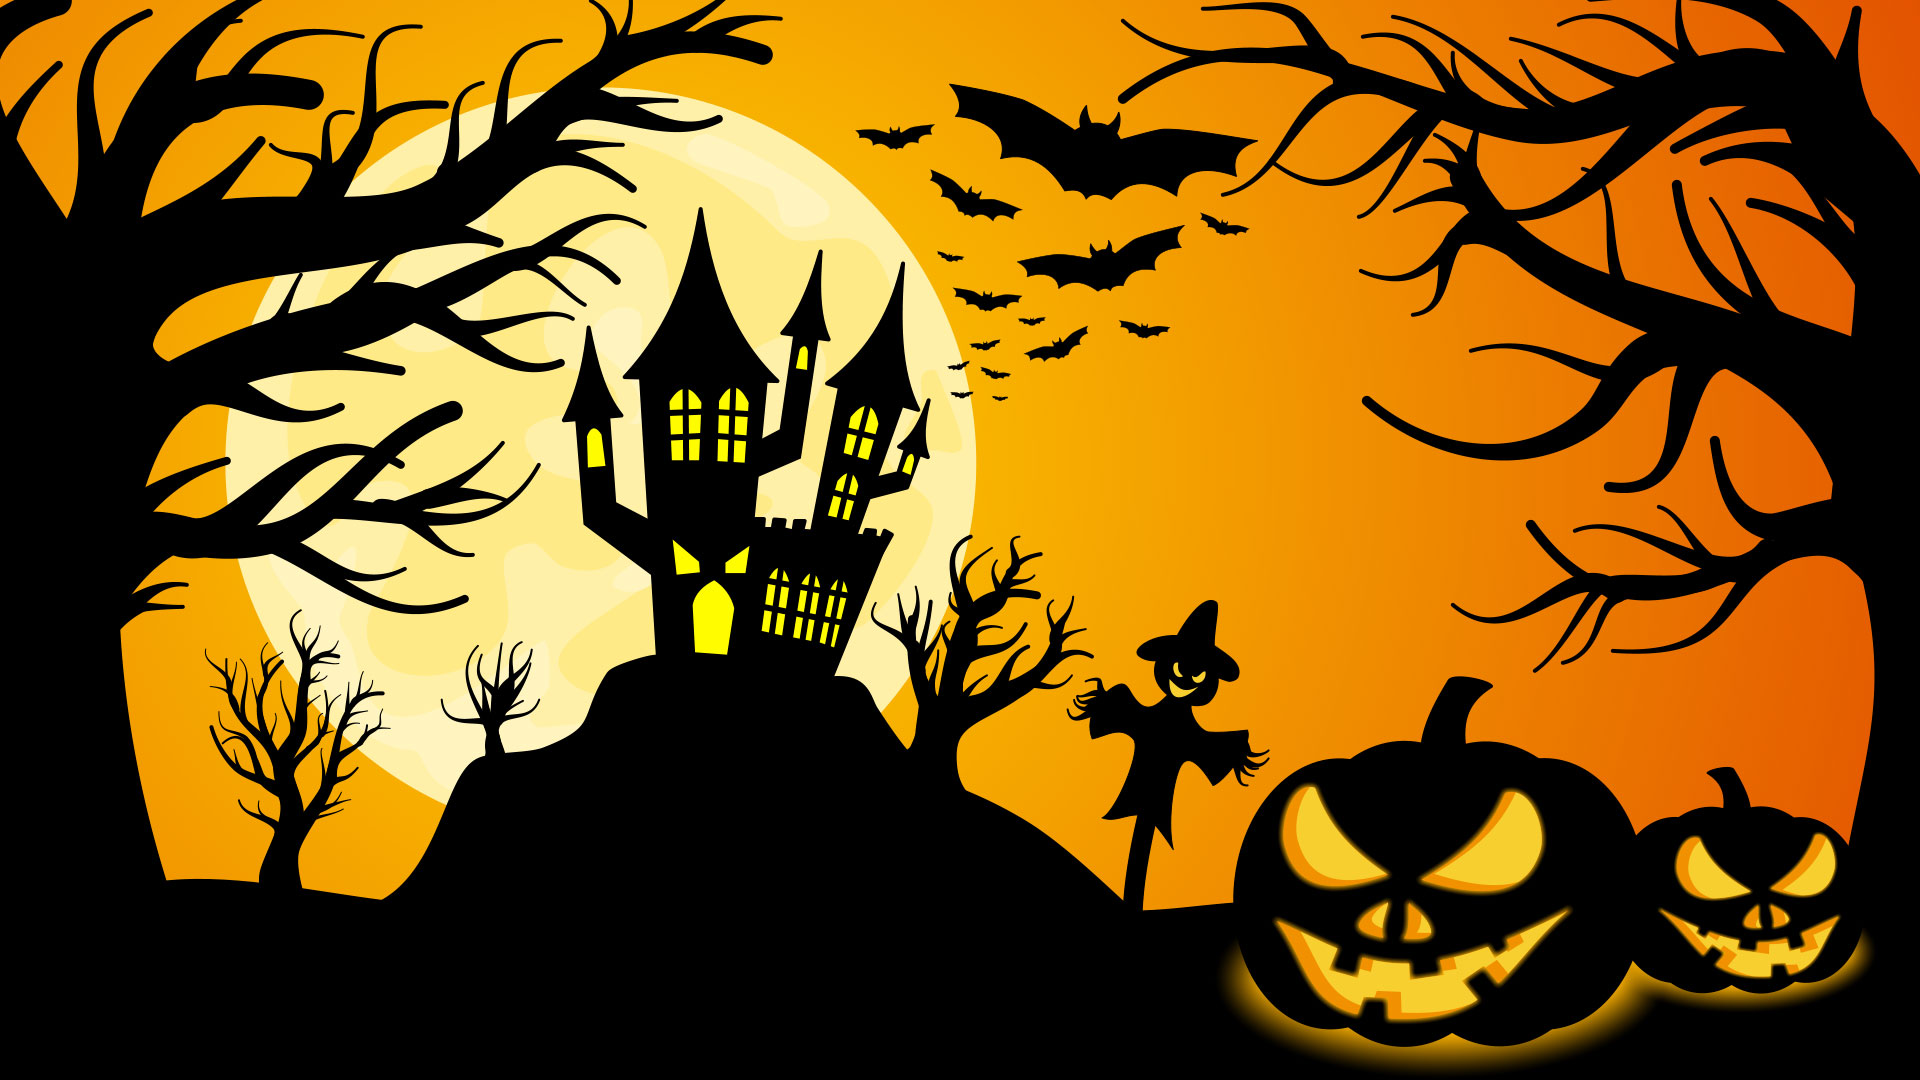 50 Scary Halloween 2019 Wallpapers Hd Backgrounds